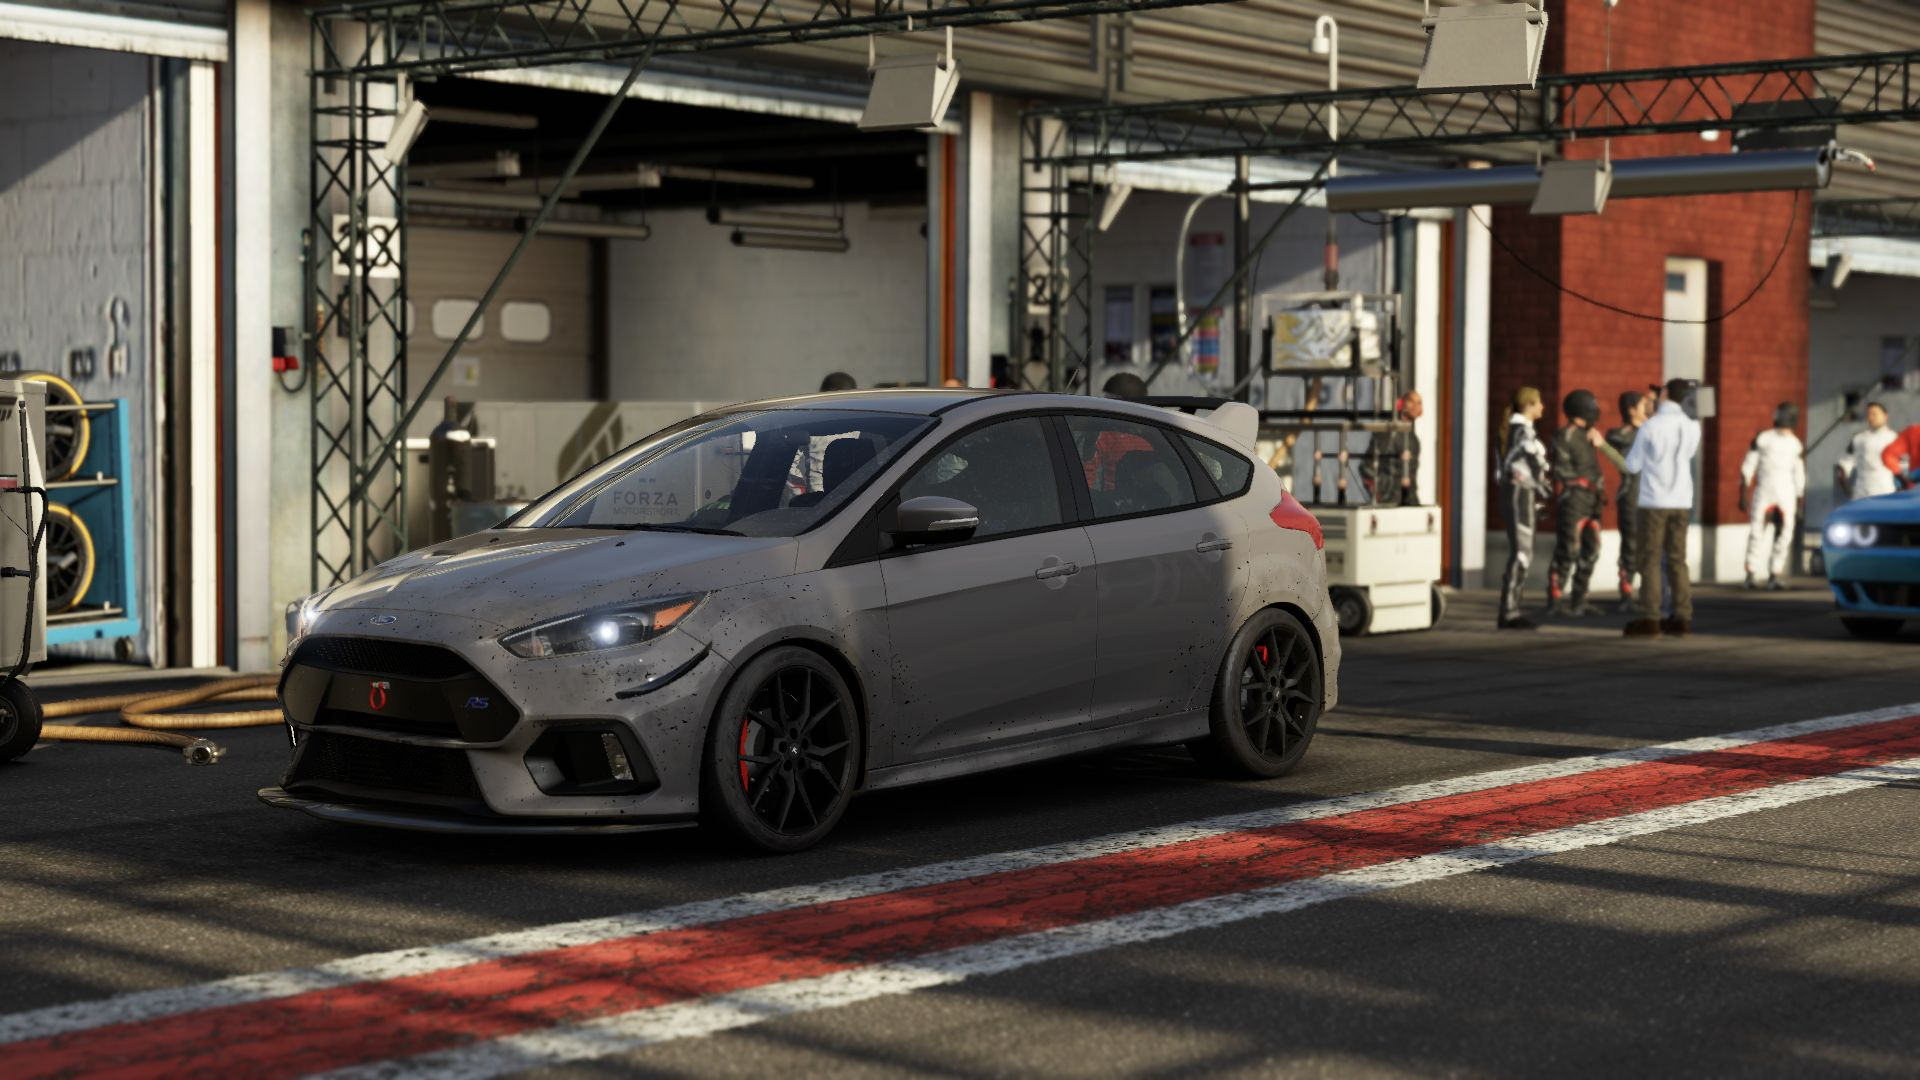 Ford Focus Rs Grey Esports Car Of The Week 2016 Ford Focus Rs Art Of Gears